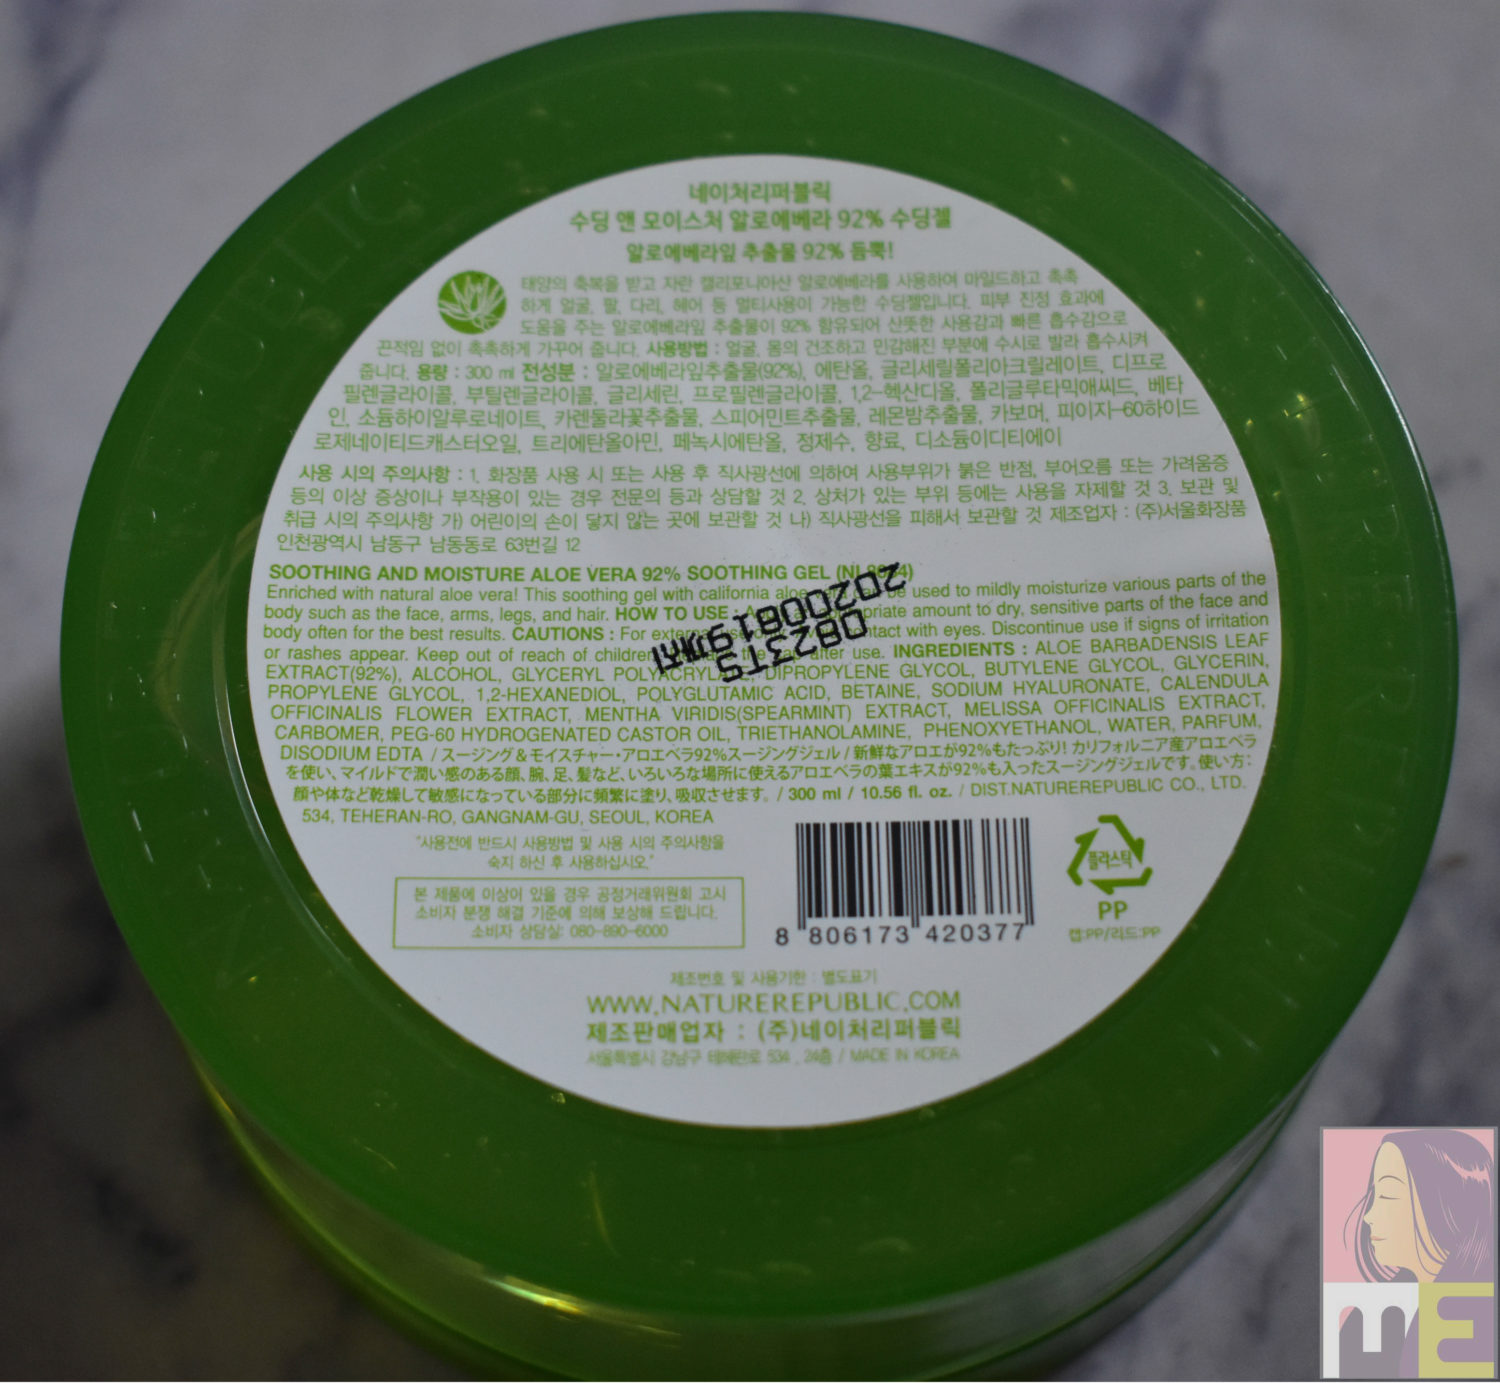 Nature Republic Aloe Vera 92 Soothing Gel Review Beautifully Me Now That My Skin Has Healed I Still Swear By It Even Though Theres A High Possibility Might Ditch During The Colder Months Or Maybe Use Along